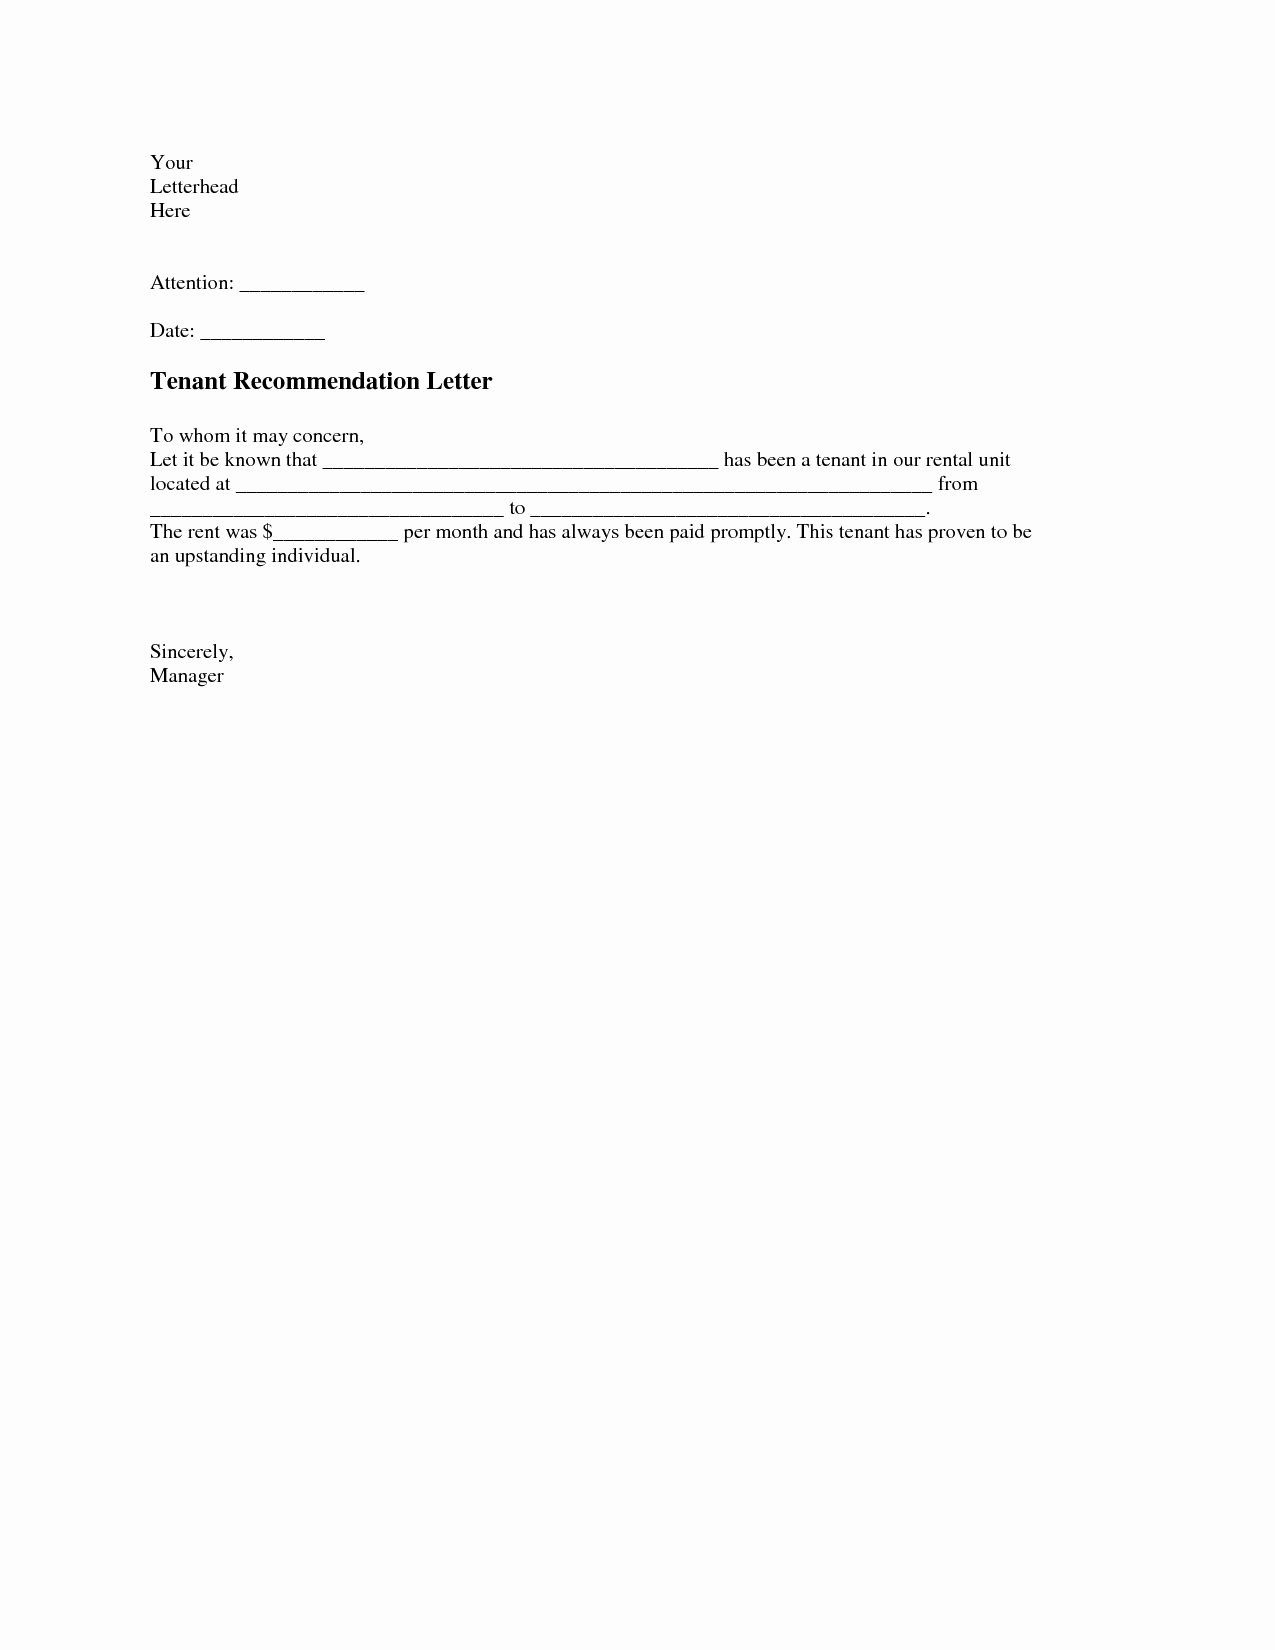 Tenant Letter Of Recommendation Inspirational Tenant Re Mendation Letter A Tenant Re Mendation